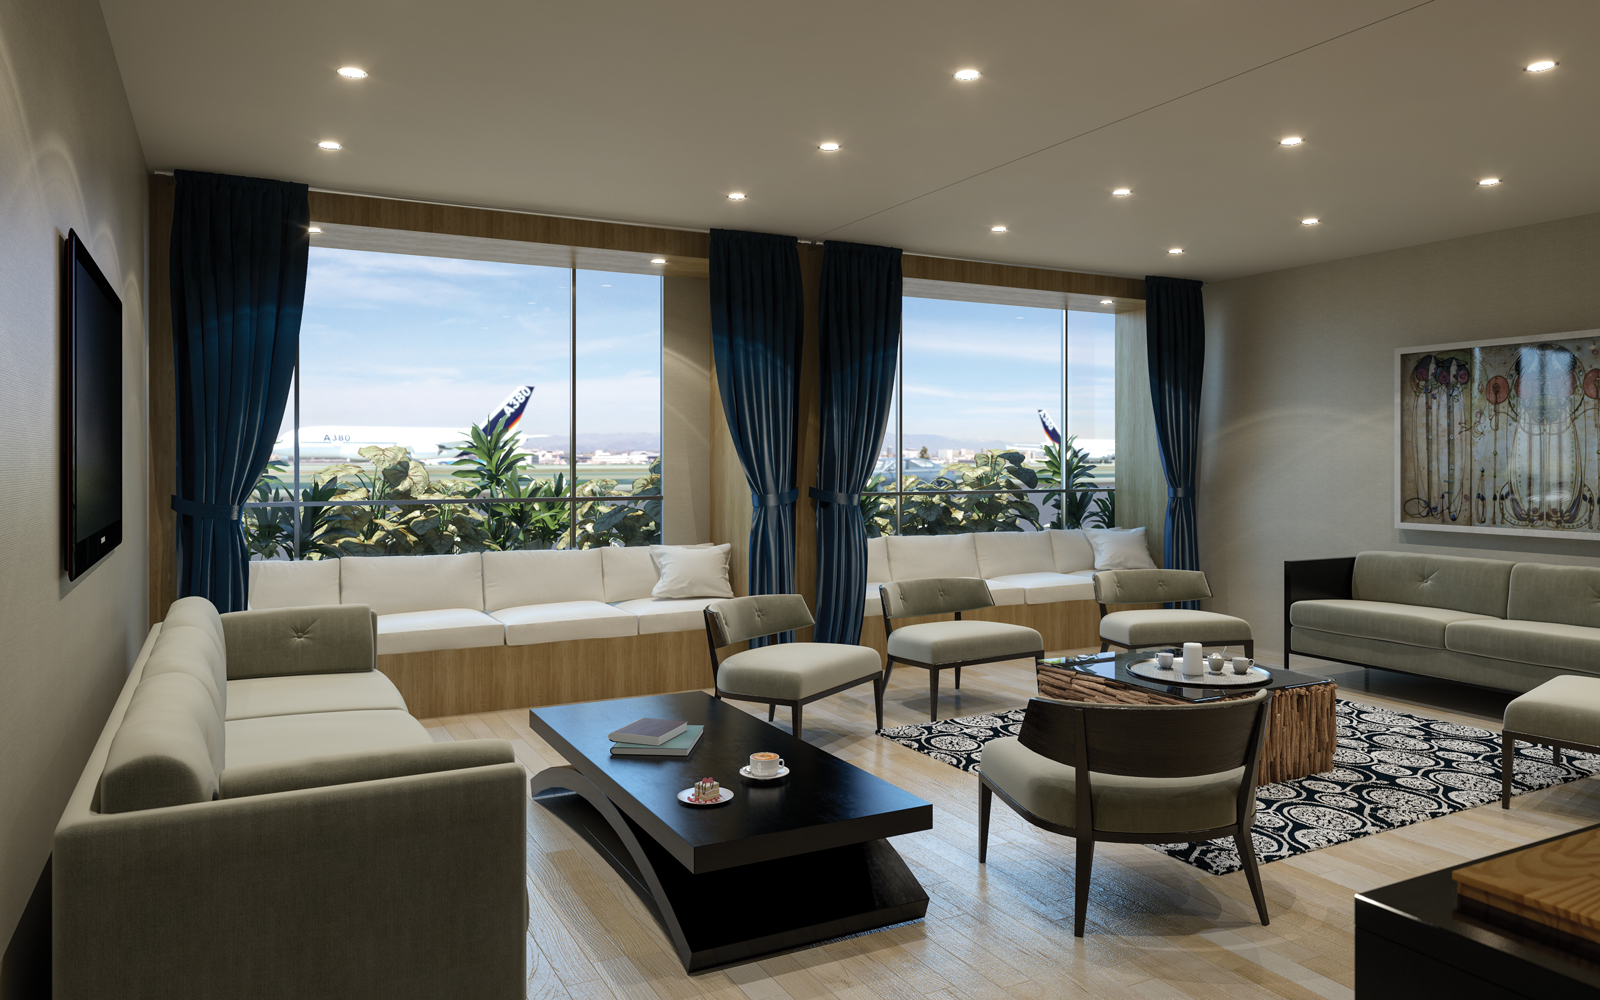 The Private Suite is a new luxury terminal at LAX for VIPs only.